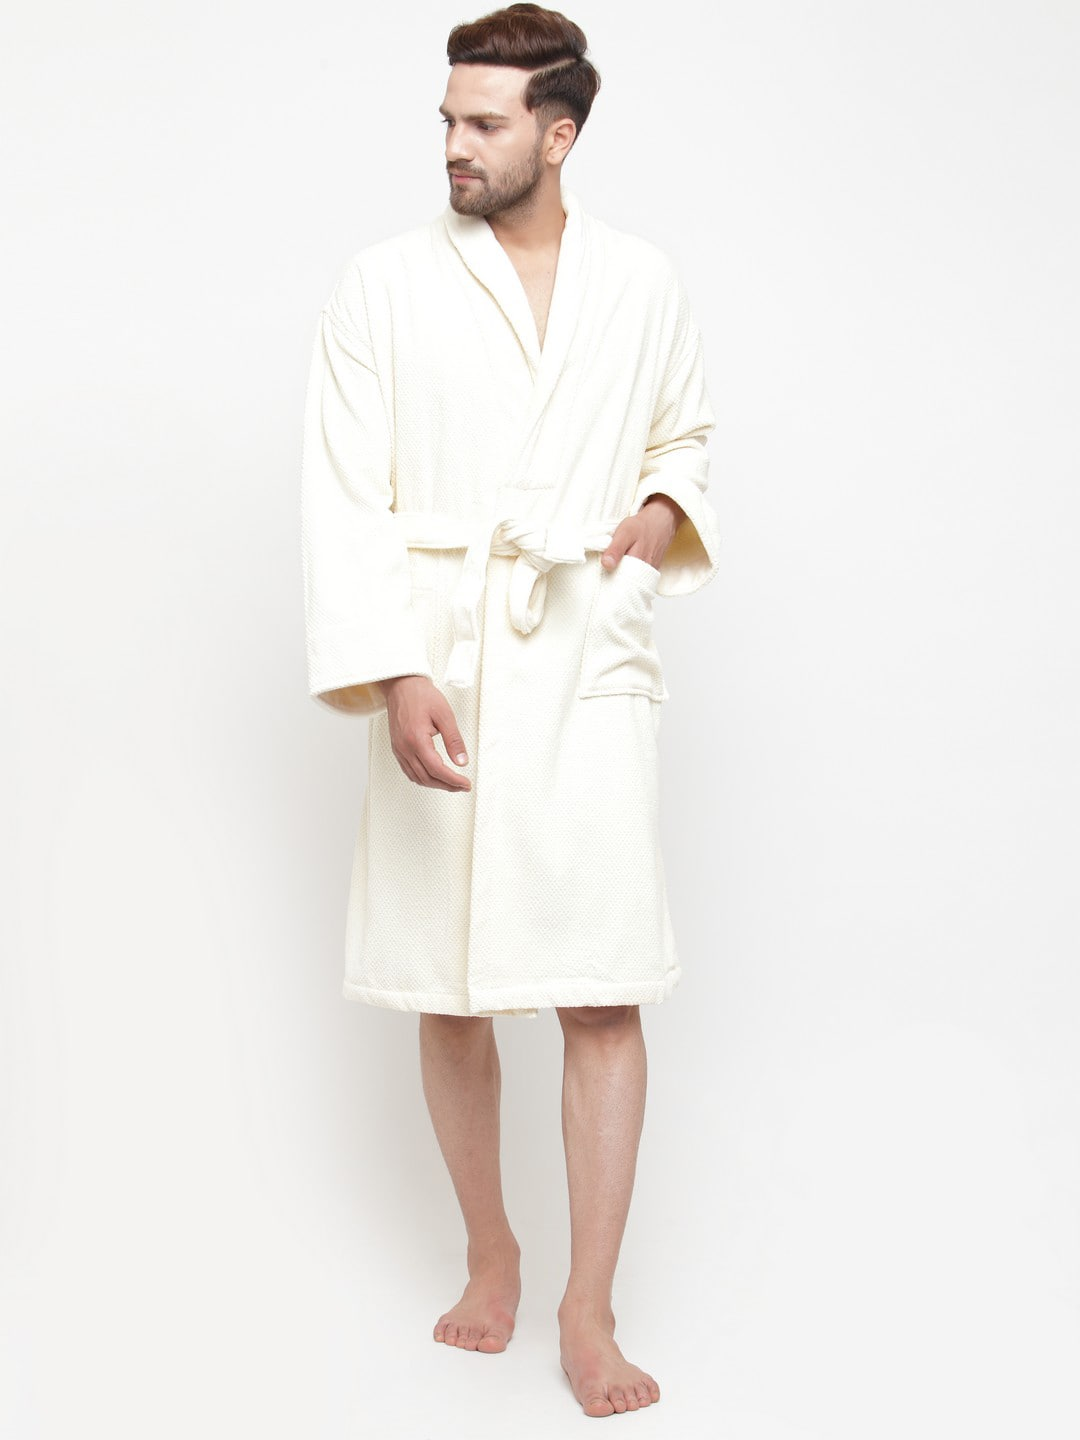 Men Robe - Buy Men Robe online in India 074ed33f0